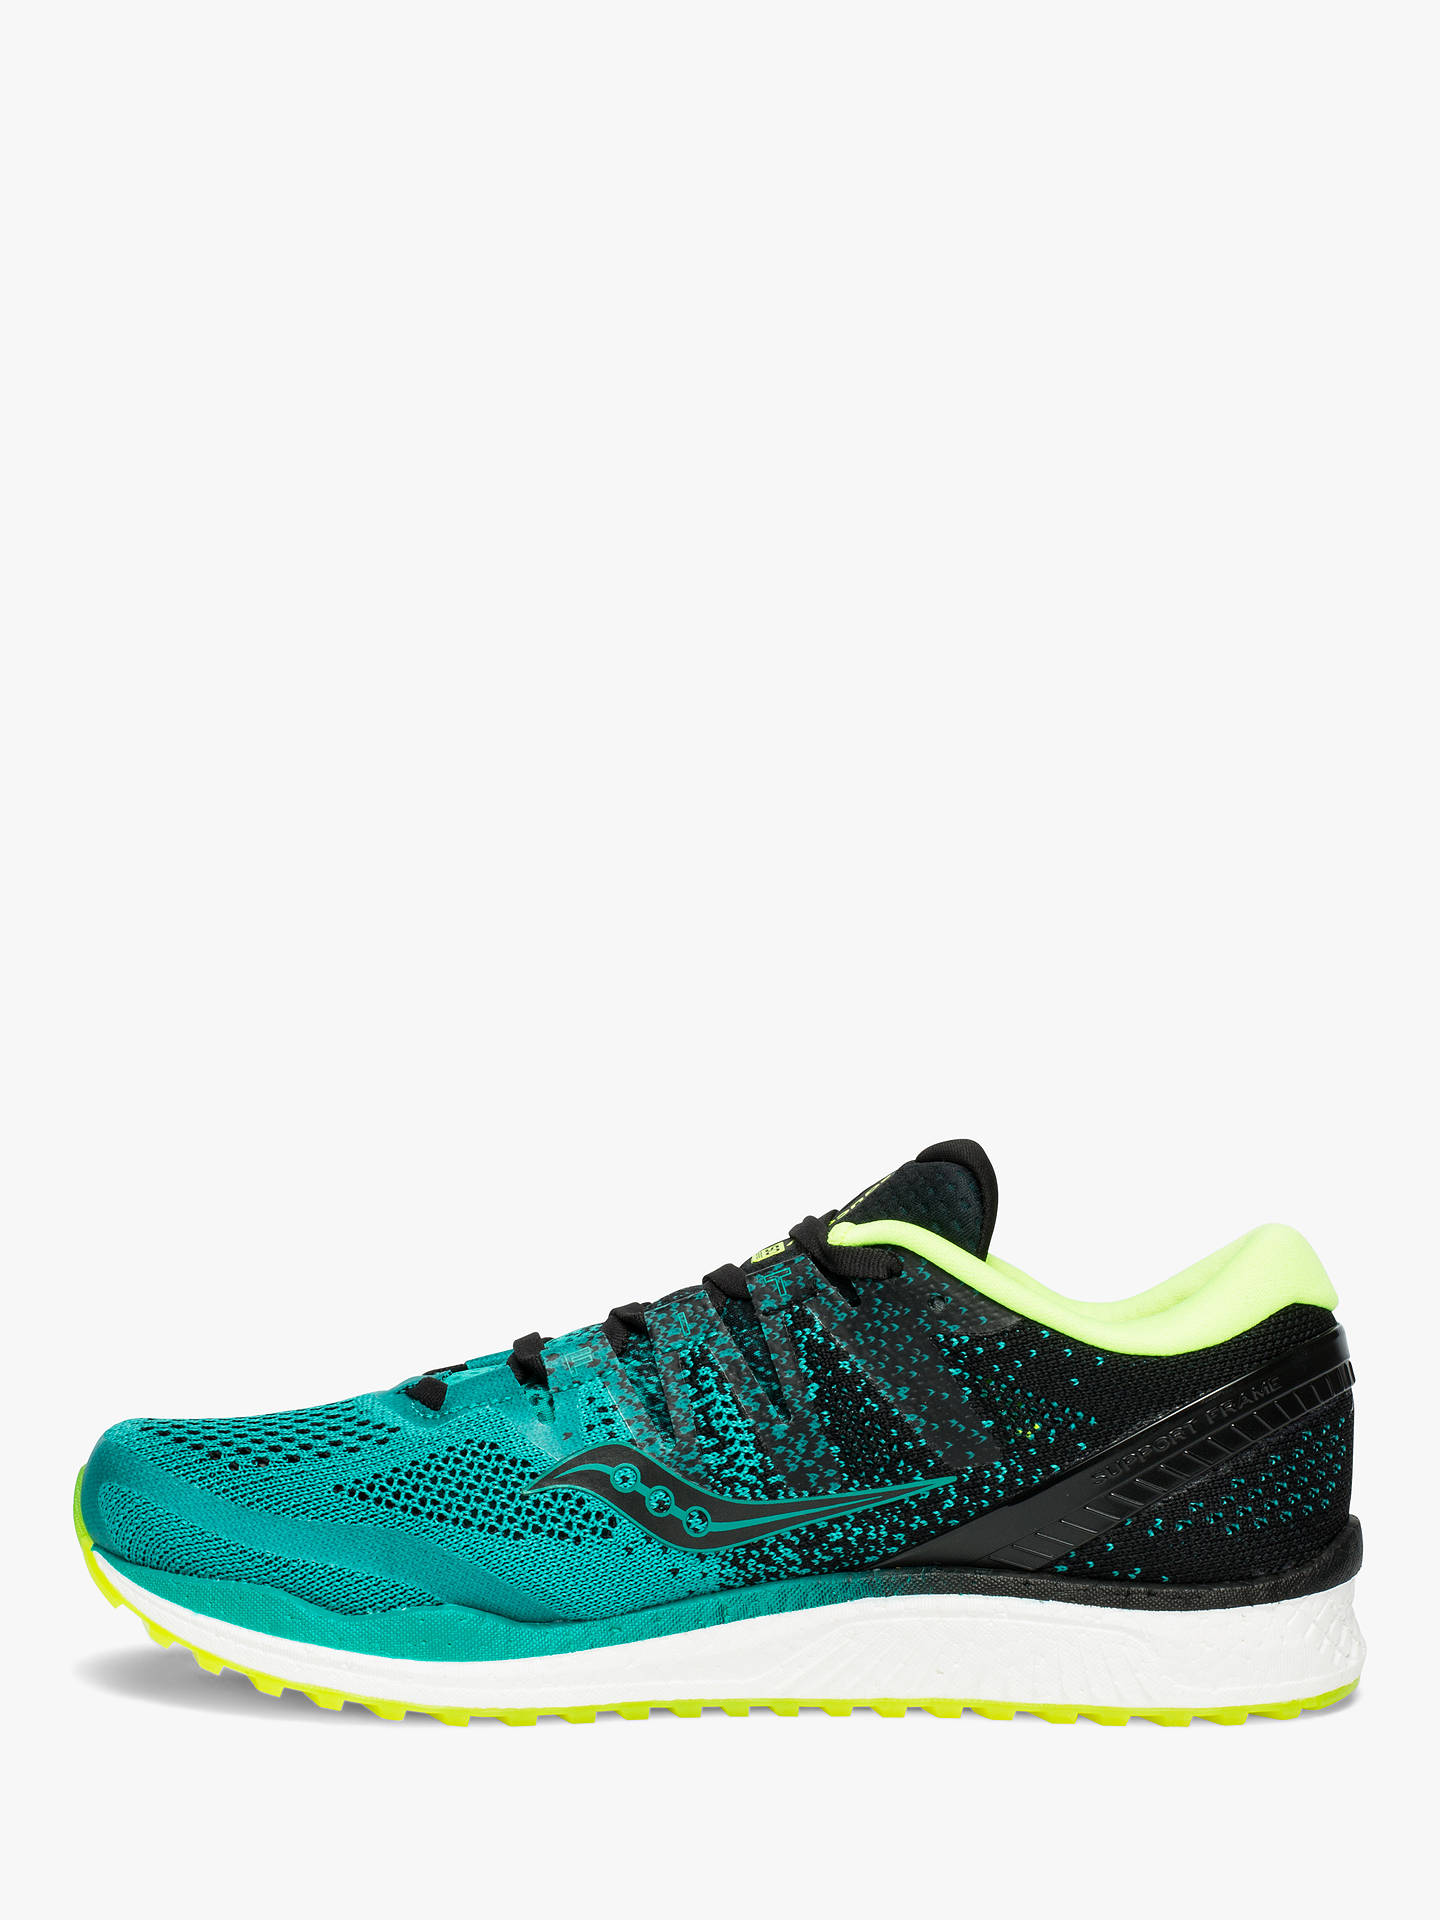 Buy Saucony Freedom ISO 2 Men's Running Shoes, Teal/Black, 9 Online at johnlewis.com